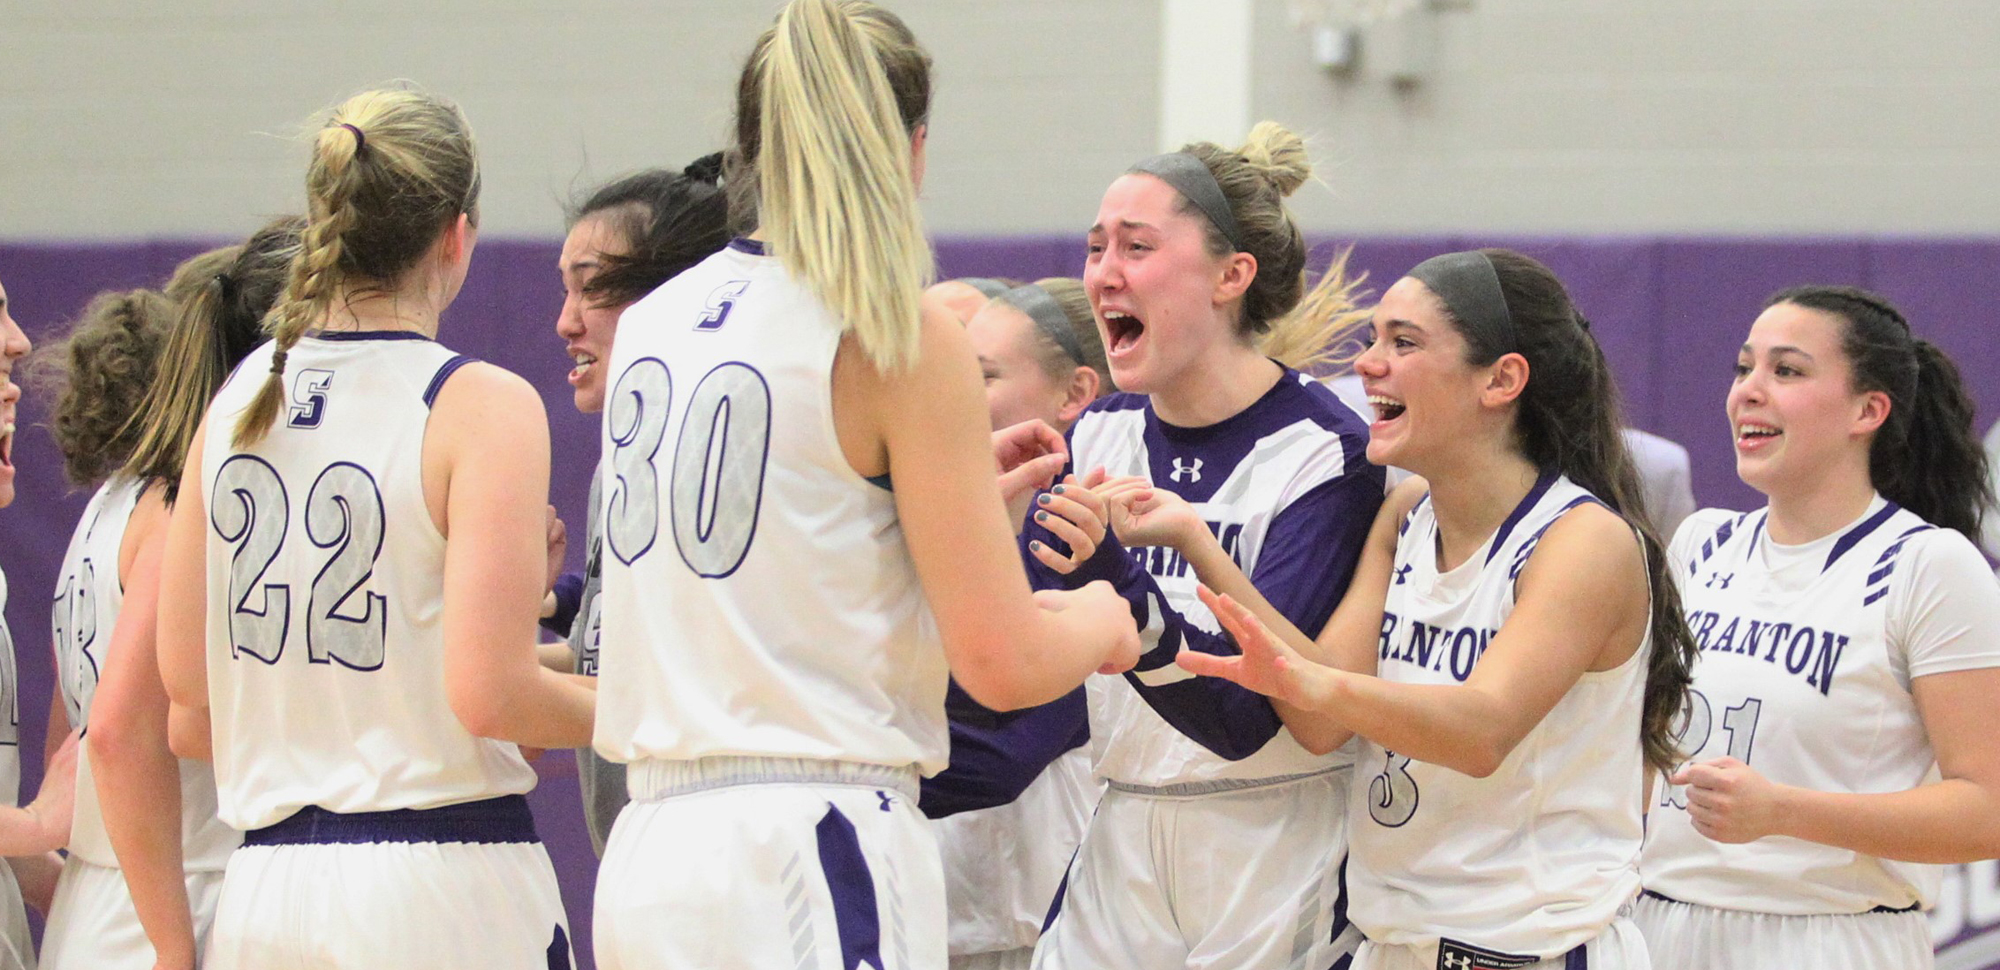 The University of Scranton Women's Basketball team scored the final 15 points of regulation to storm past Tufts, 44-40, in the NCAA Quarterfinals on Saturday night. © Photo by Timothy R. Dougherty / doubleeaglephotography.com